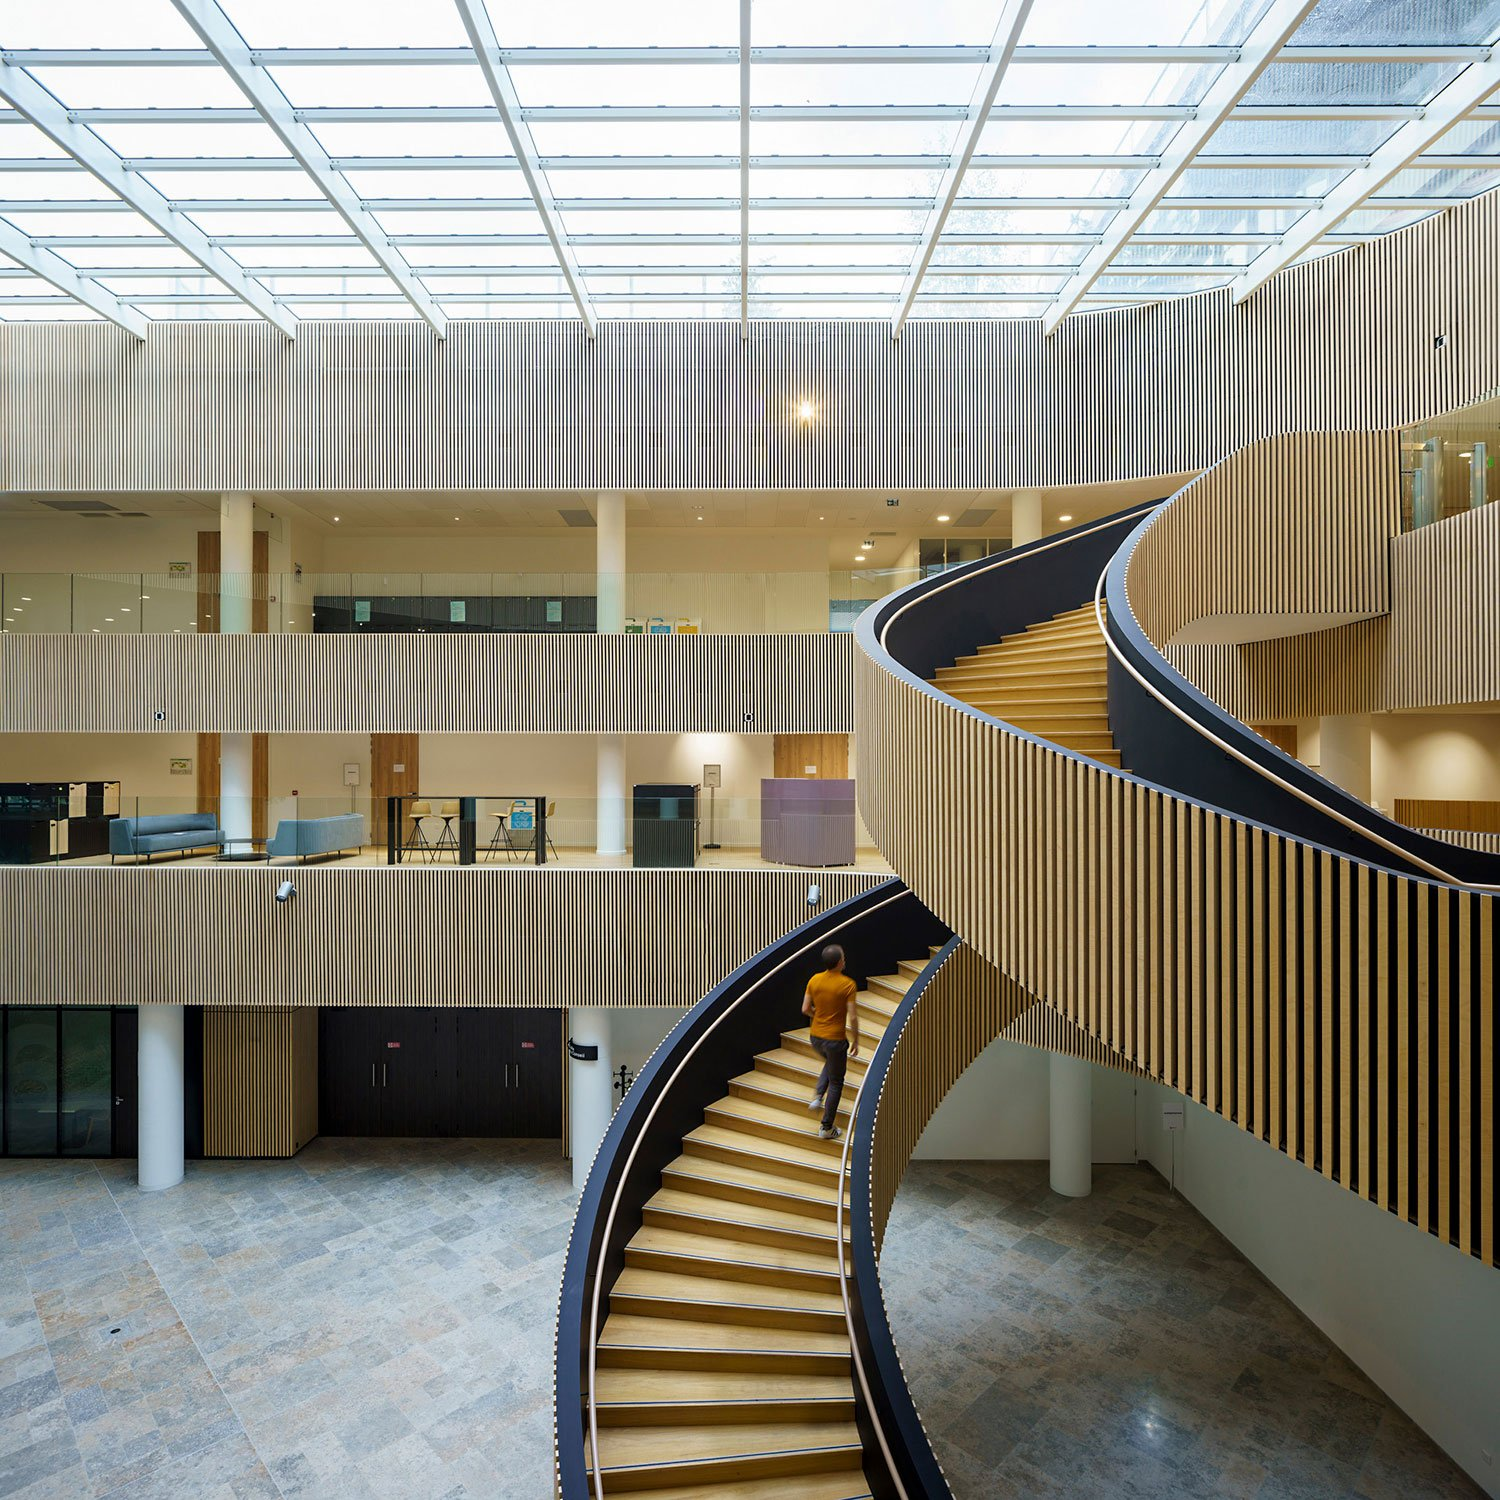 The sprawling spiral staircase traverses the entire height of the floor to ceiling atrium © Javier Callejas Sevilla